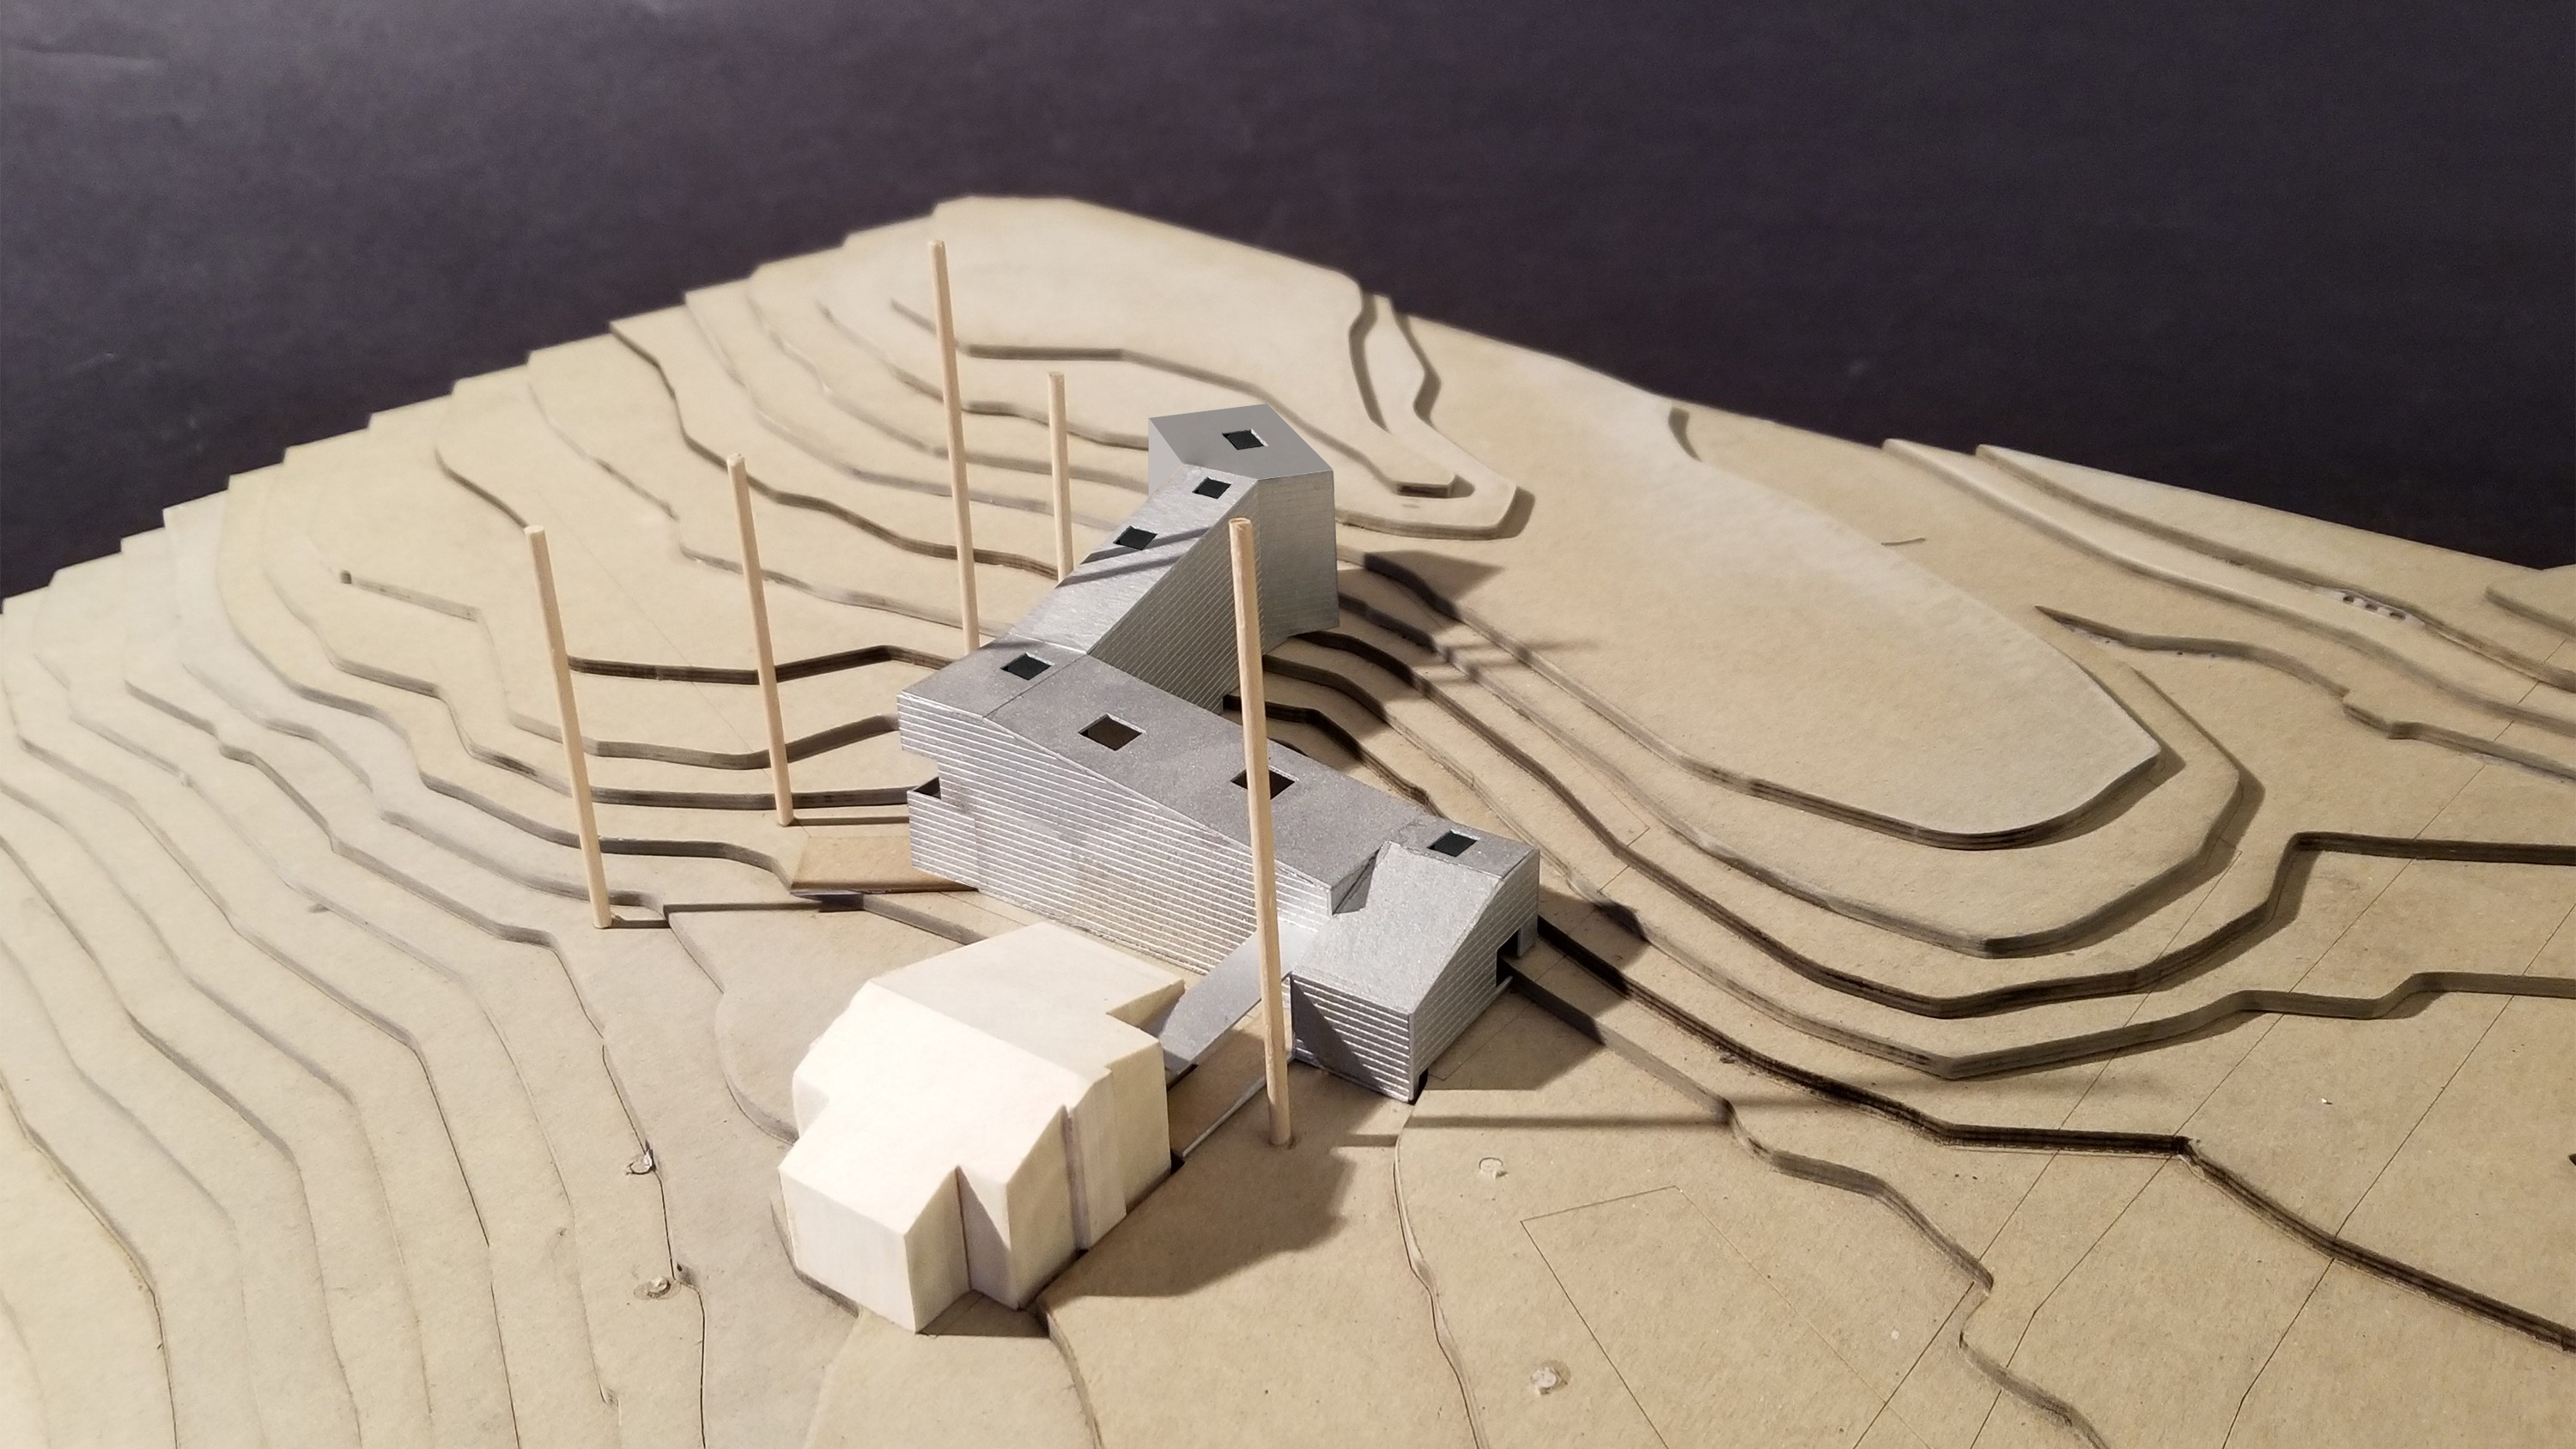 https://stevenholl.sfo2.digitaloceanspaces.com/uploads/projects/project-images/small model_horizontal.jpg